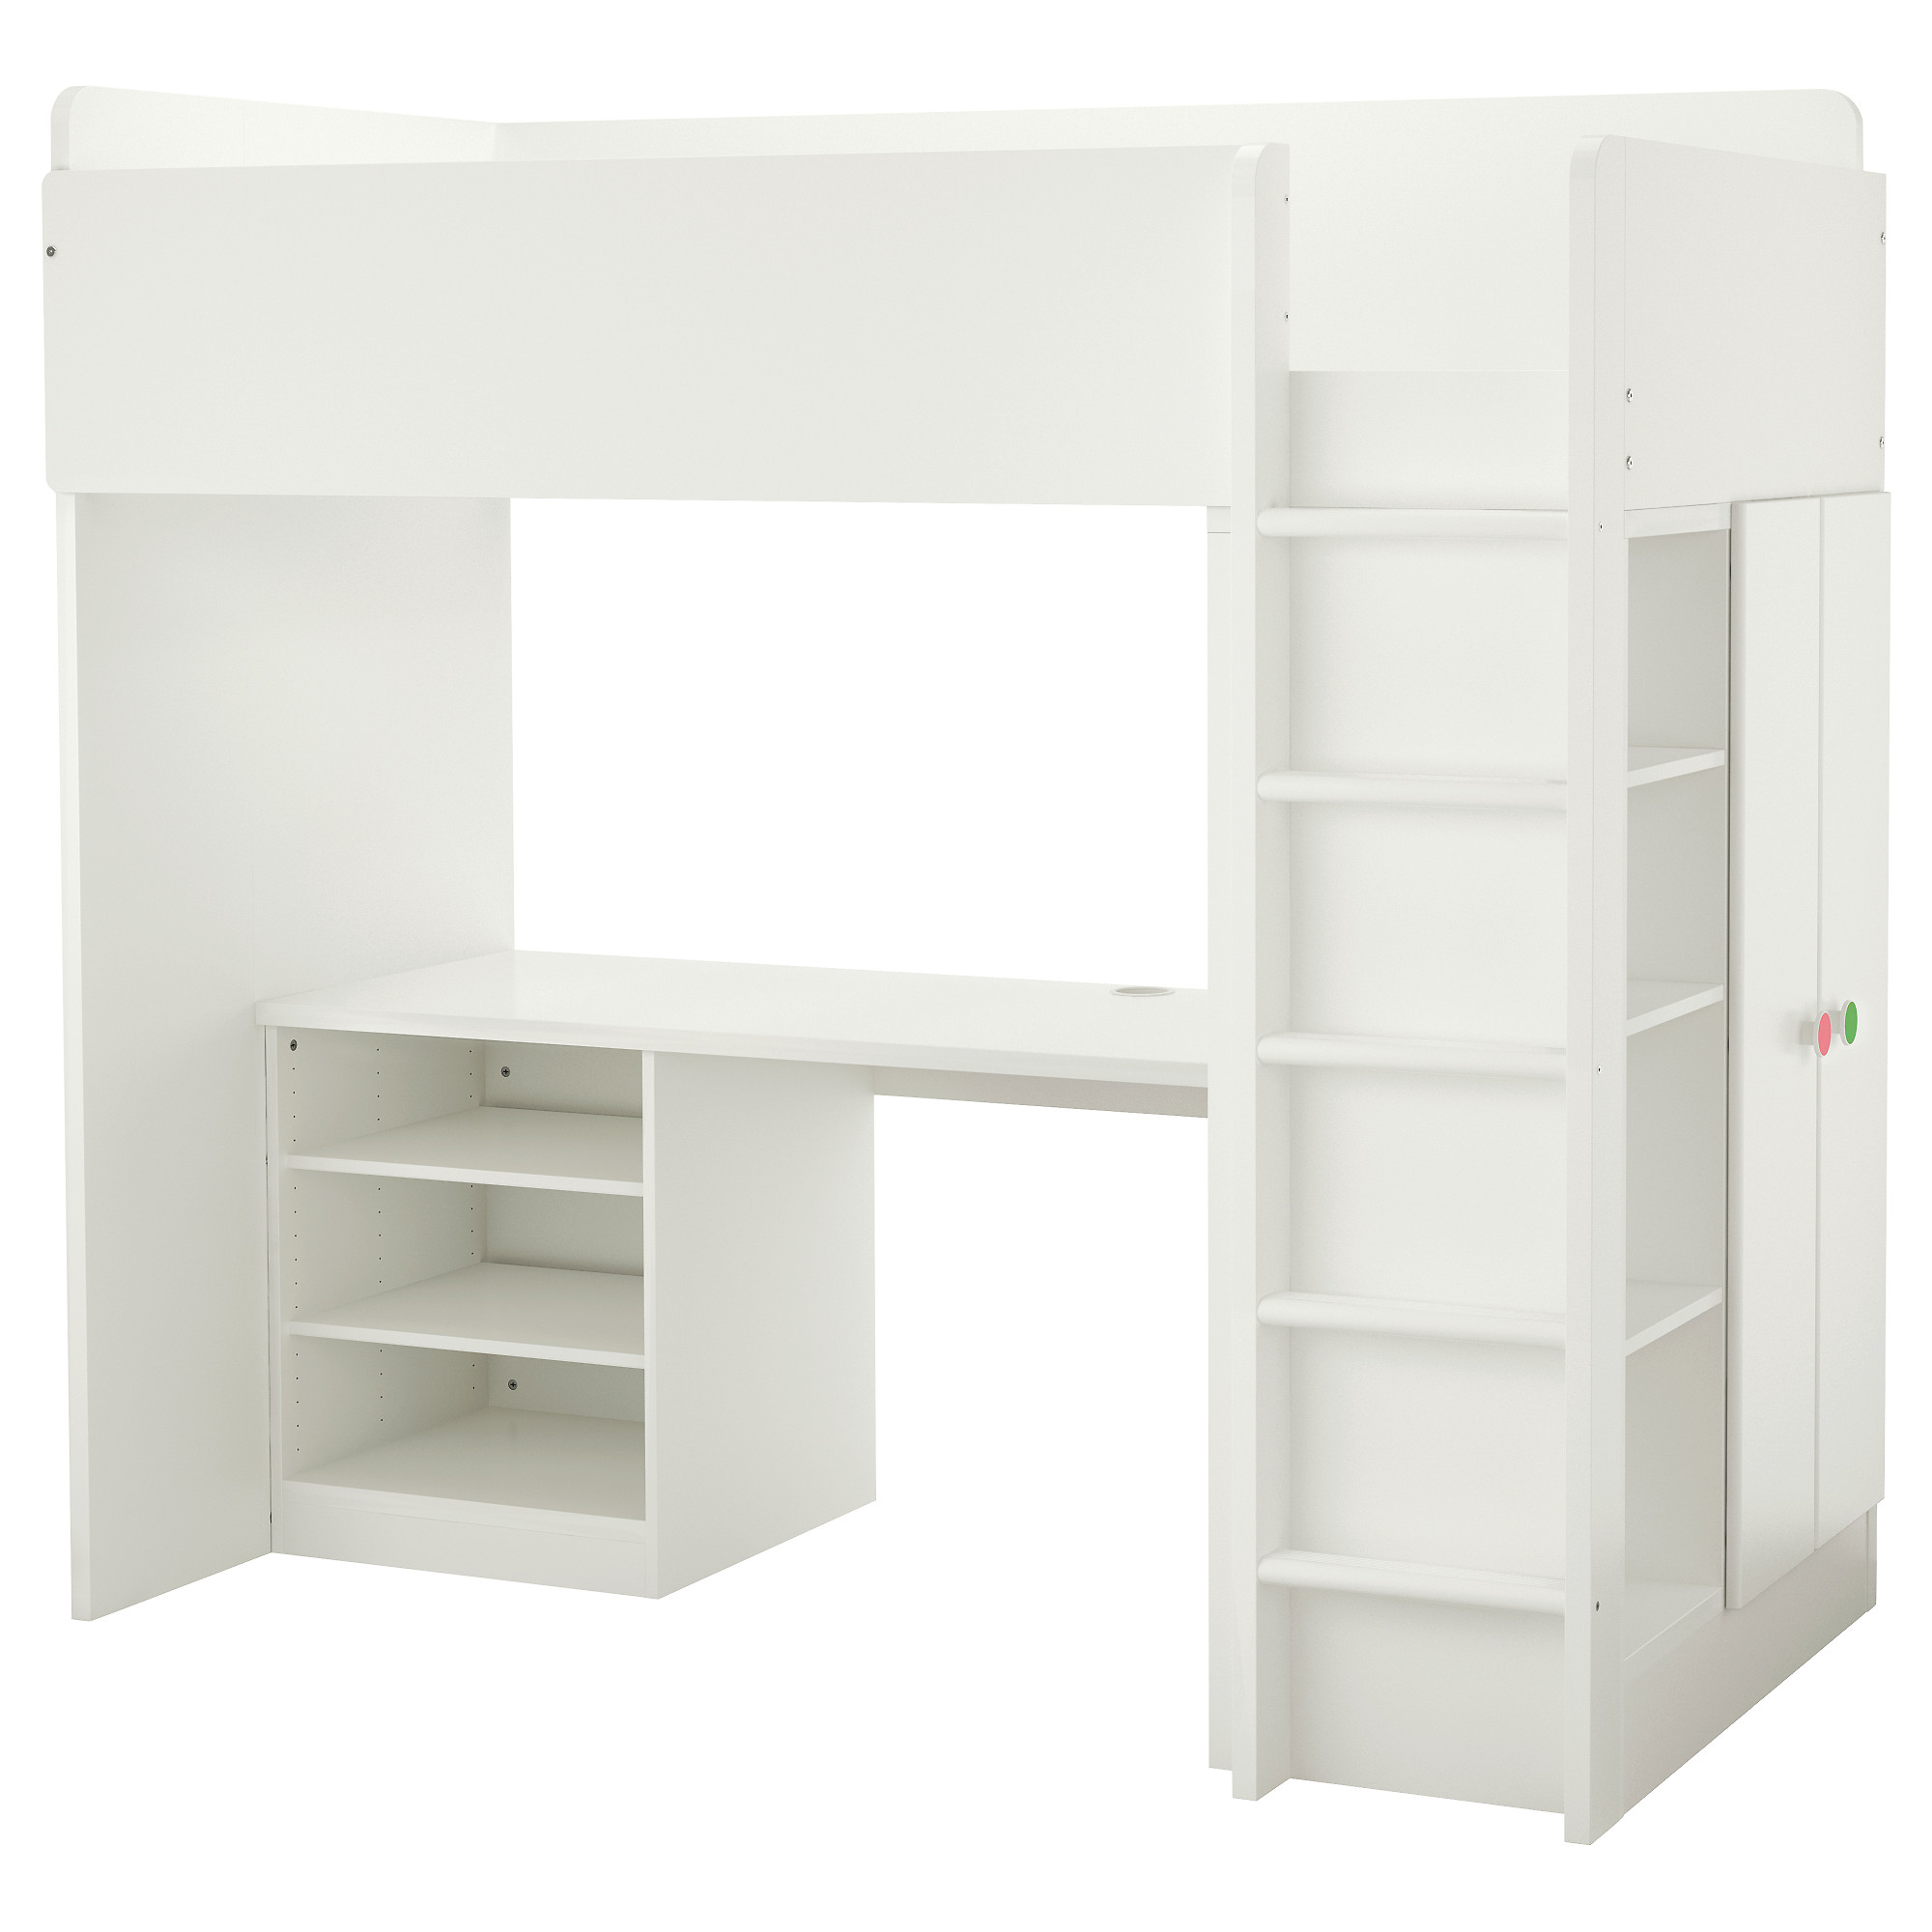 Bunk bed with desk ikea - Stuva F Lja Loft Bed With 2 Shelves 2 Doors White Height 76